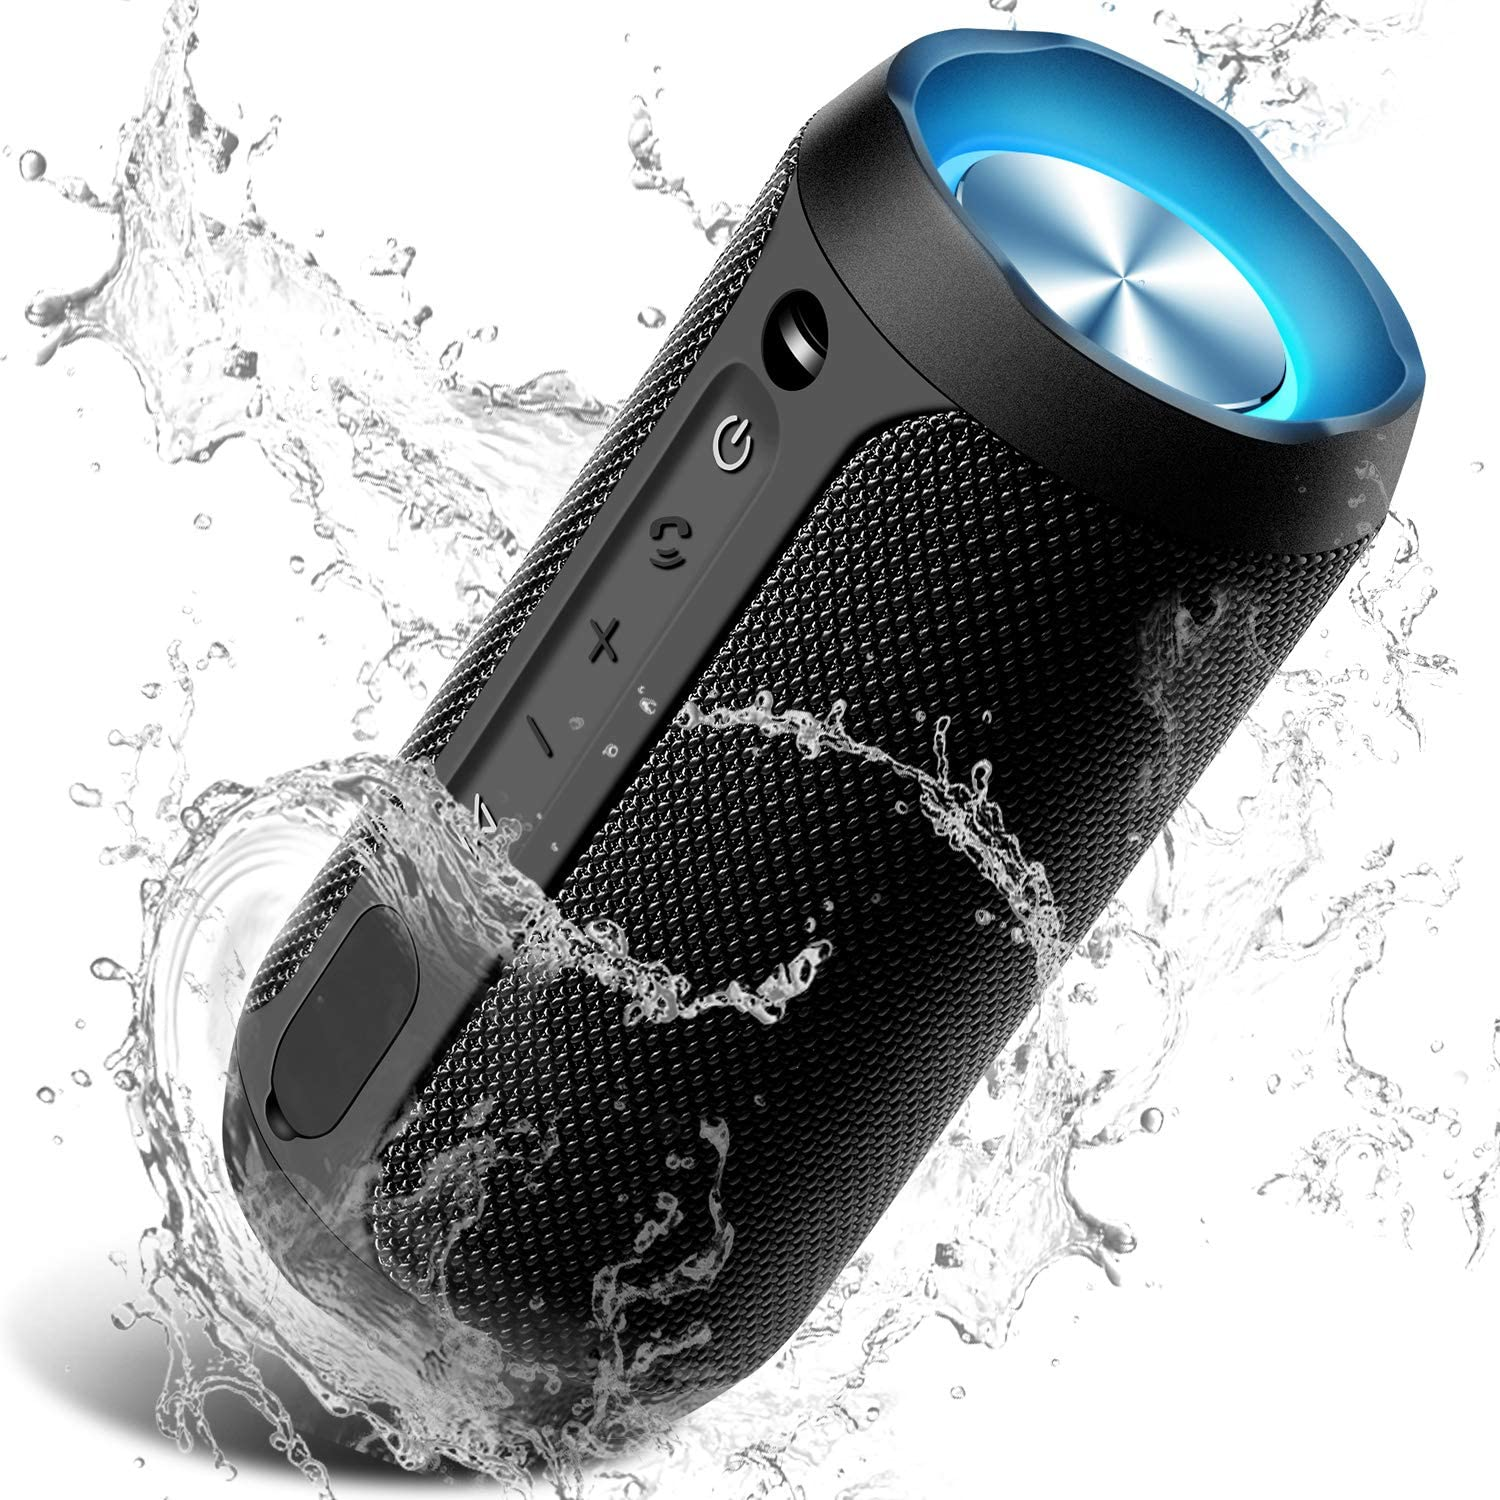 Wireless speaker Bluetooth, portable speaker